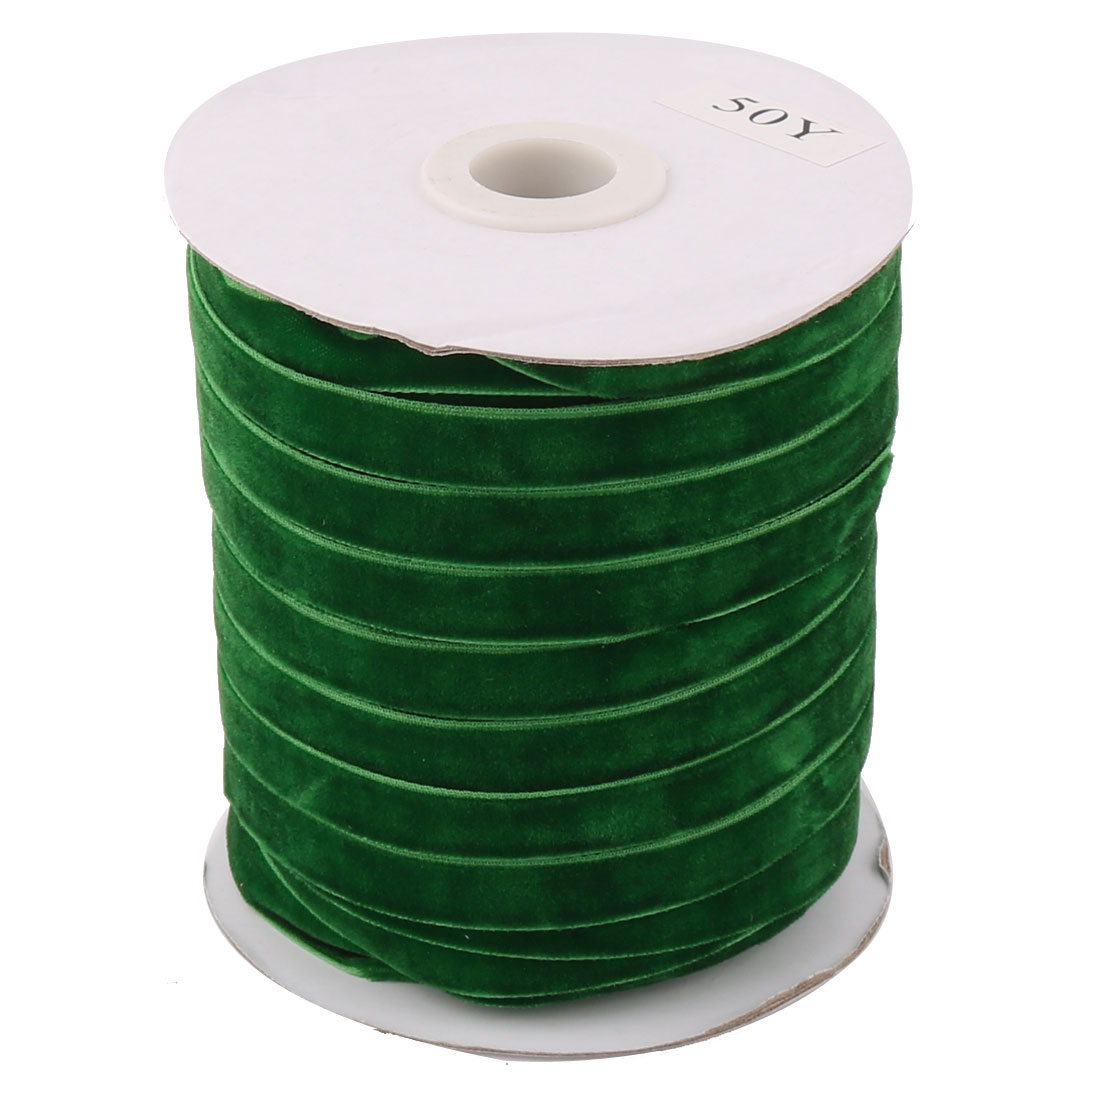 Festival Party Decoration Velvet Ribbon Round Roll Lawn Green 50 Yard 1cm Width